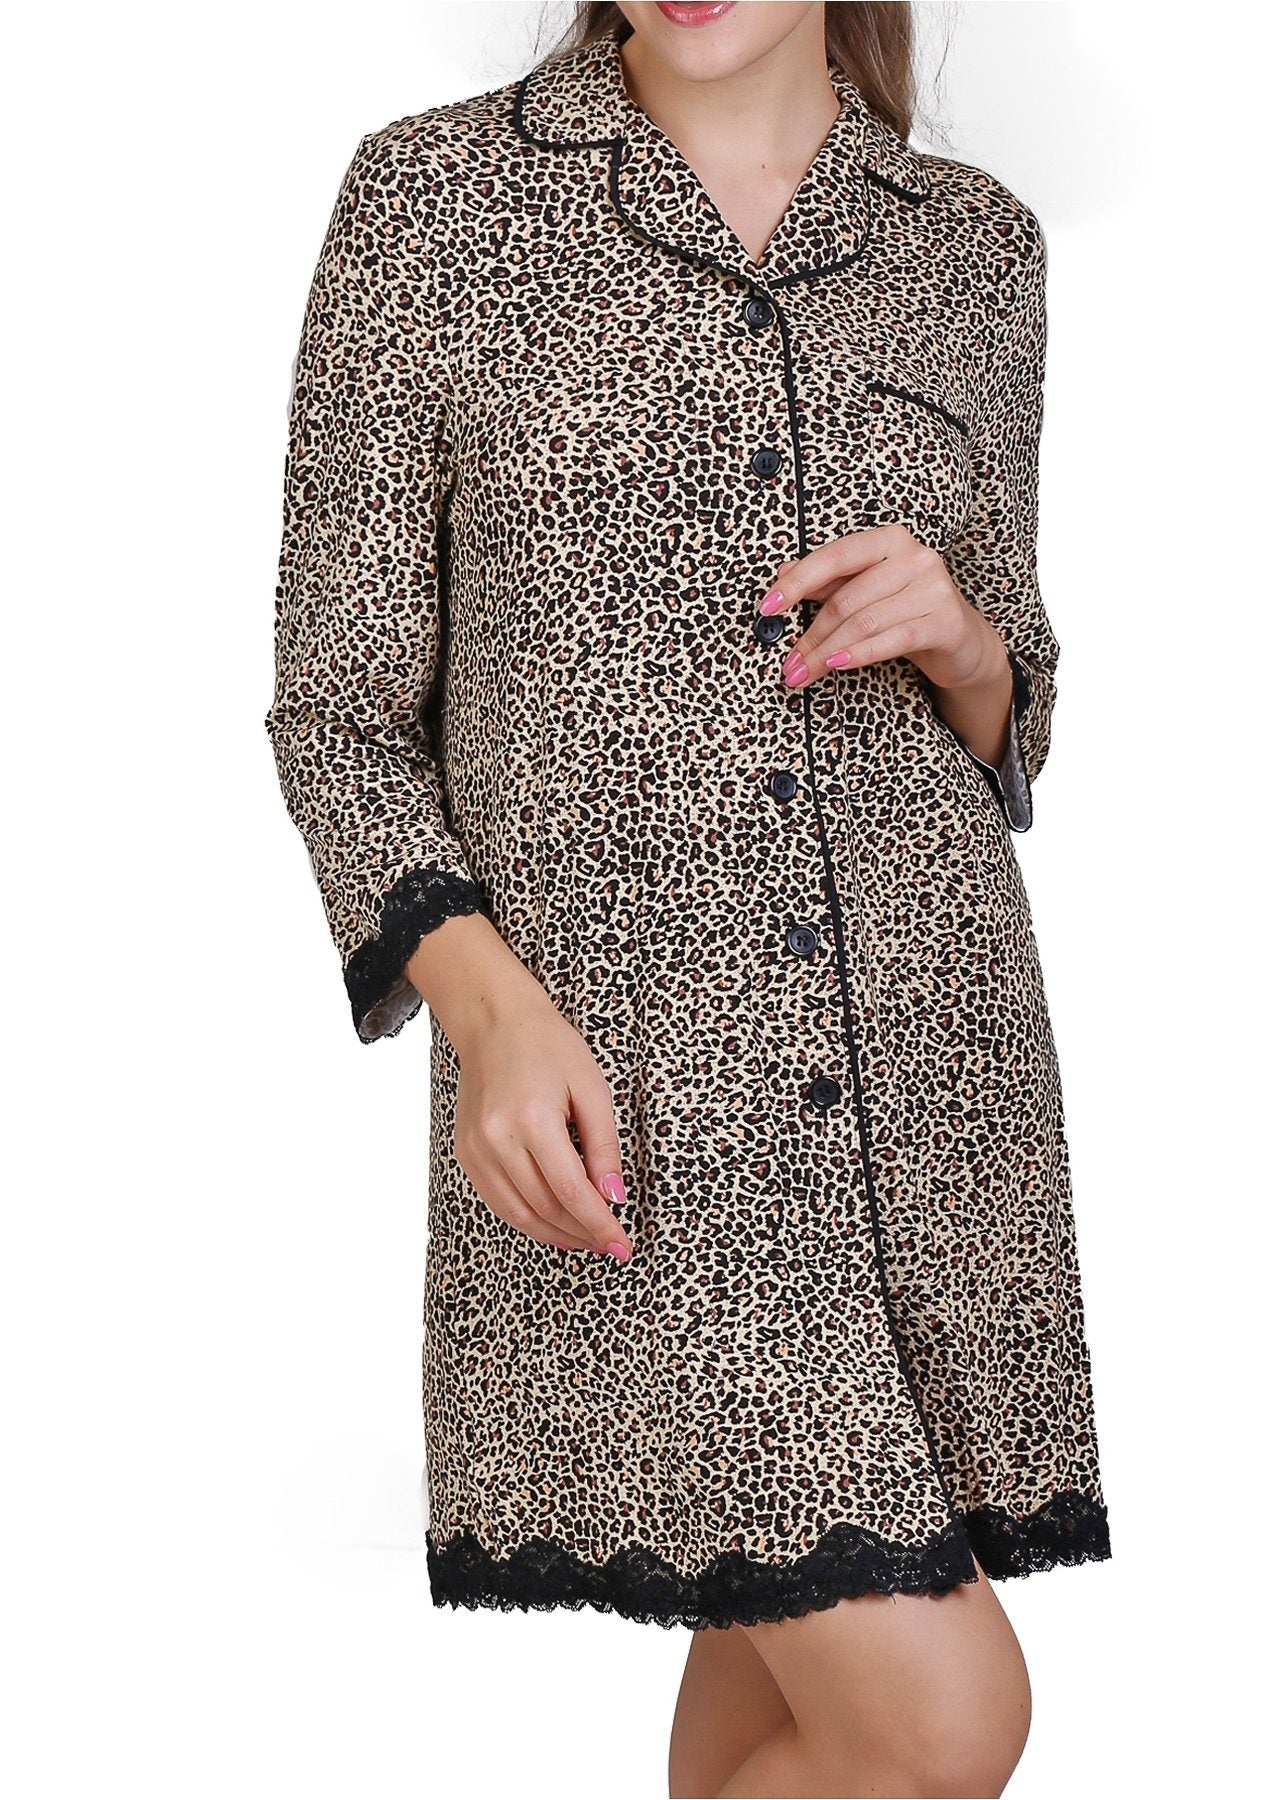 Leopard Print Sleepshirt with Lace Trim Mystique Intimates